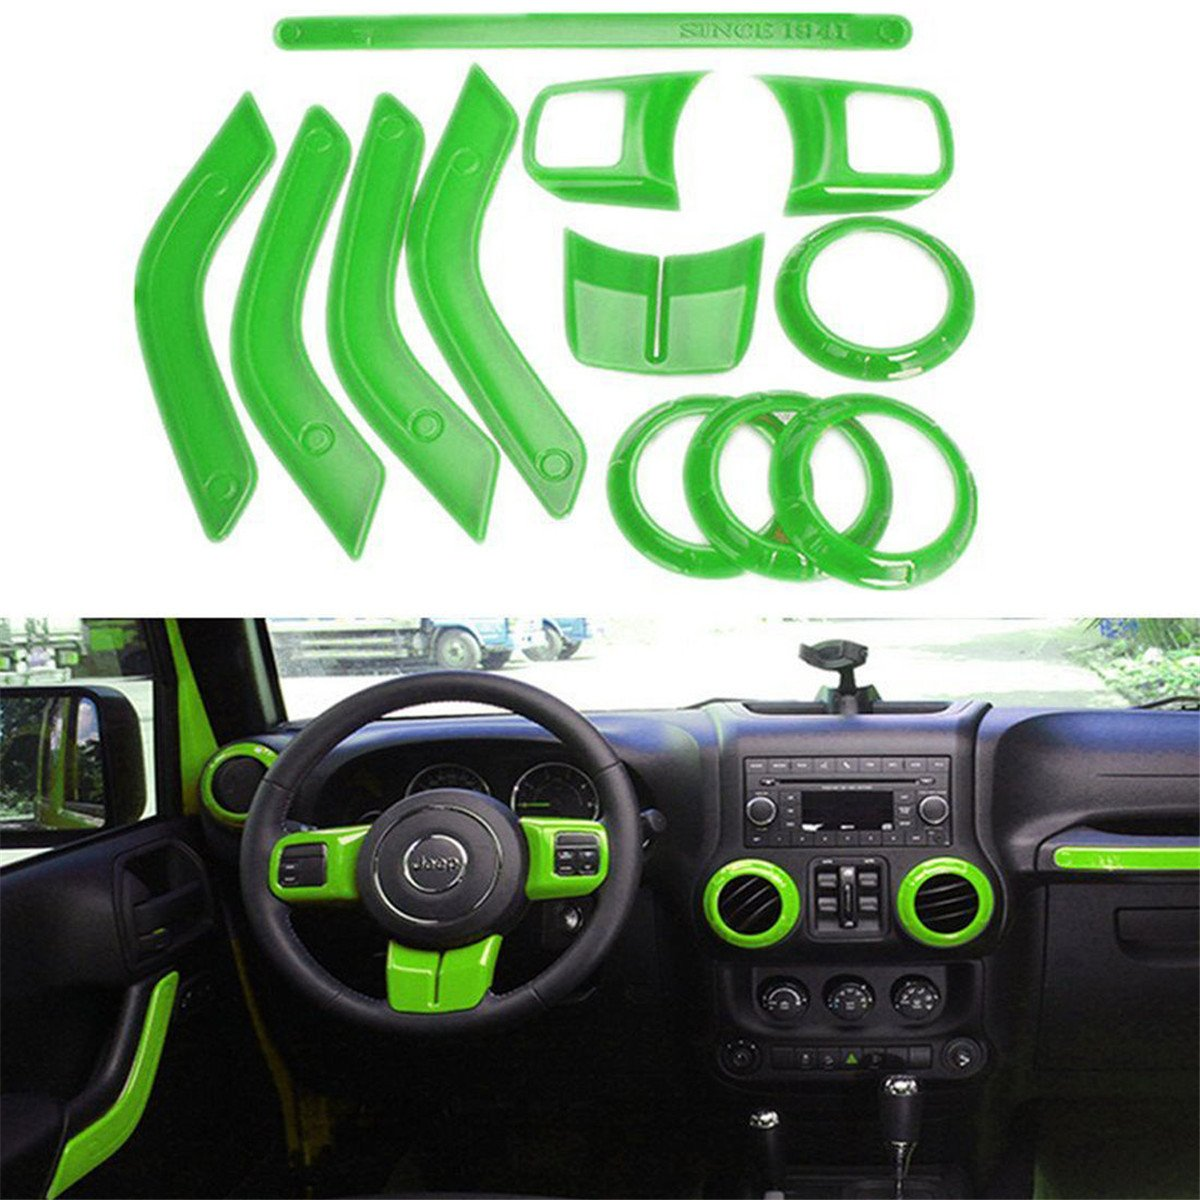 FMtoppeak 12 Pcs/Kits Green ABS Auto Interior Parts Decoration Car Inner Dashboard Trim Cover for Jeep Wrangler 4 Door 2011-2016 766111850216